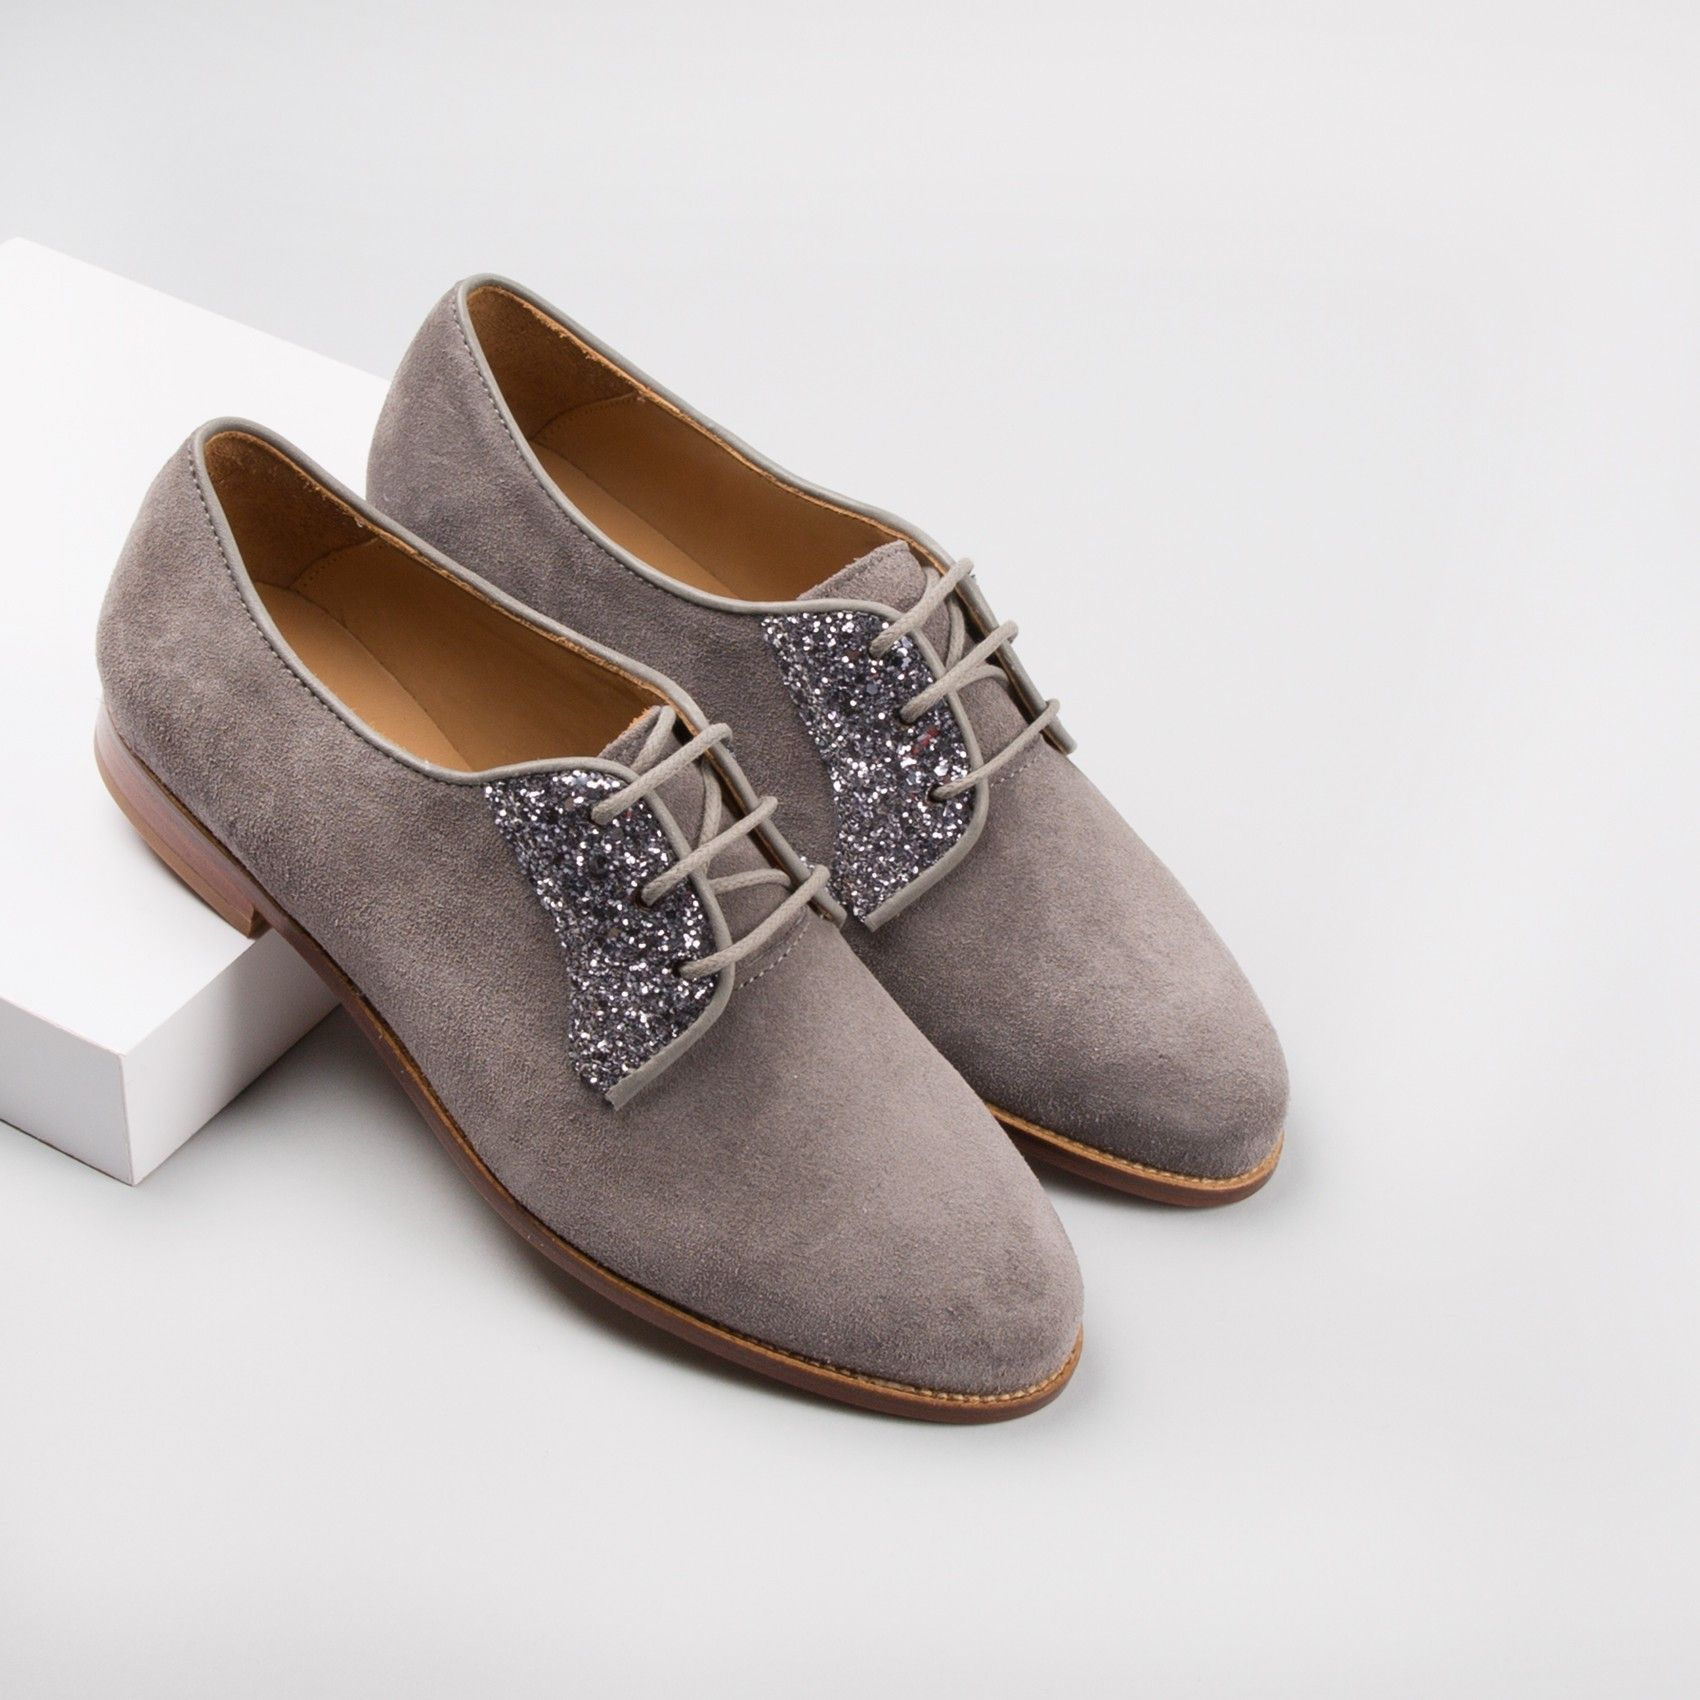 derbies gris plume la romanci re bobbies chaussures pinterest derbies gris et chaussure. Black Bedroom Furniture Sets. Home Design Ideas